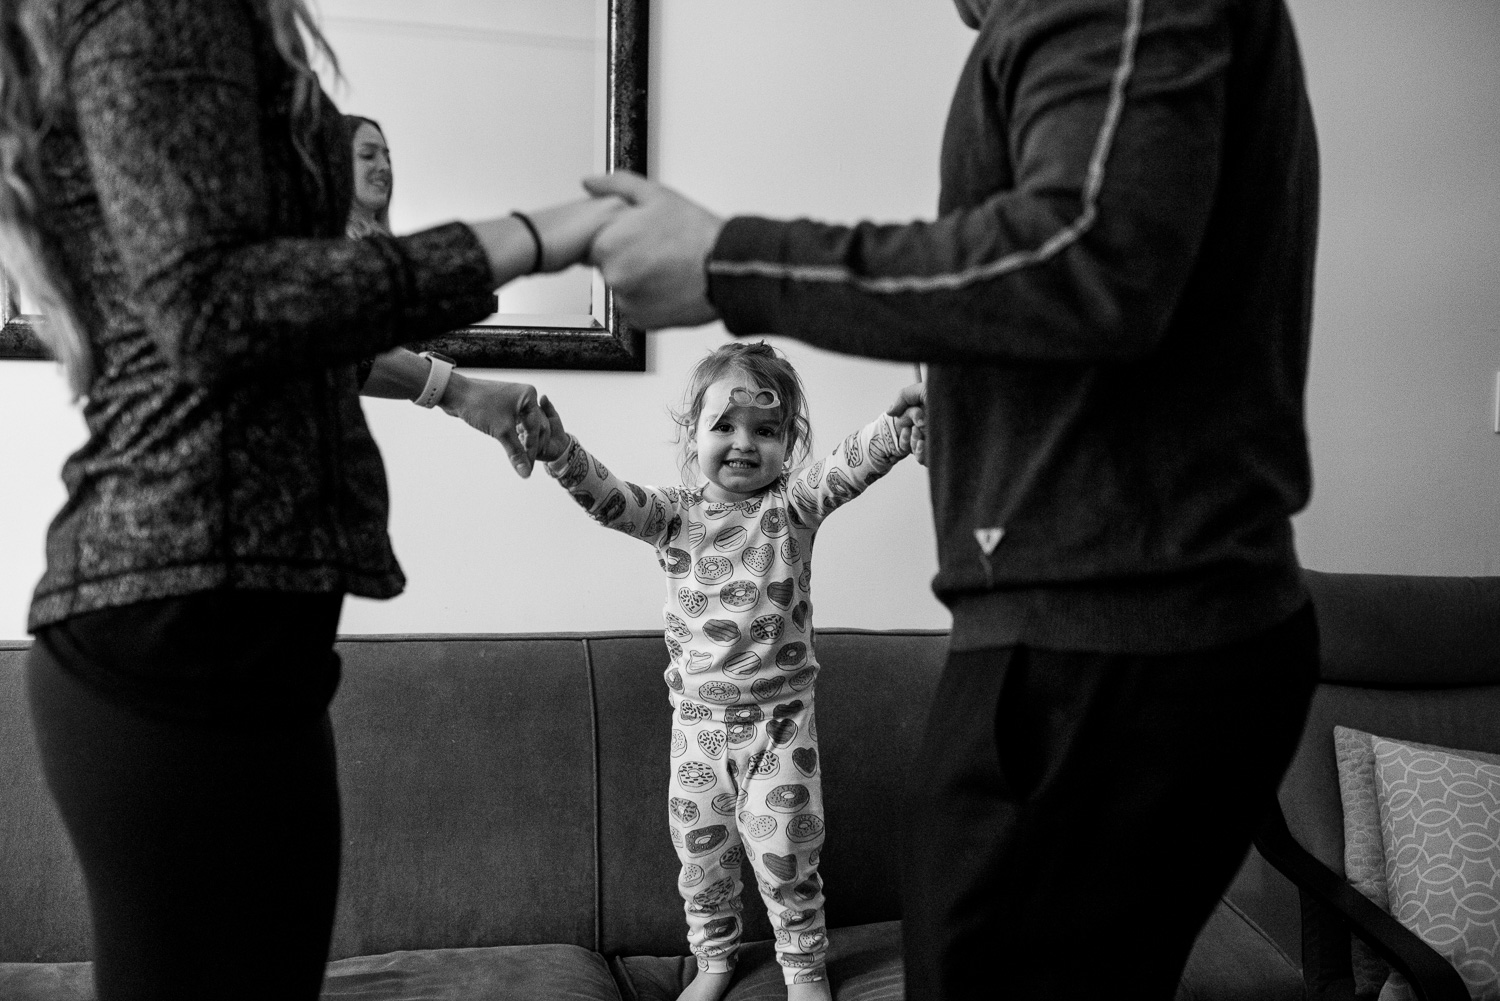 Toddler girl in donut pajamas dances on the couch with her mom and dad